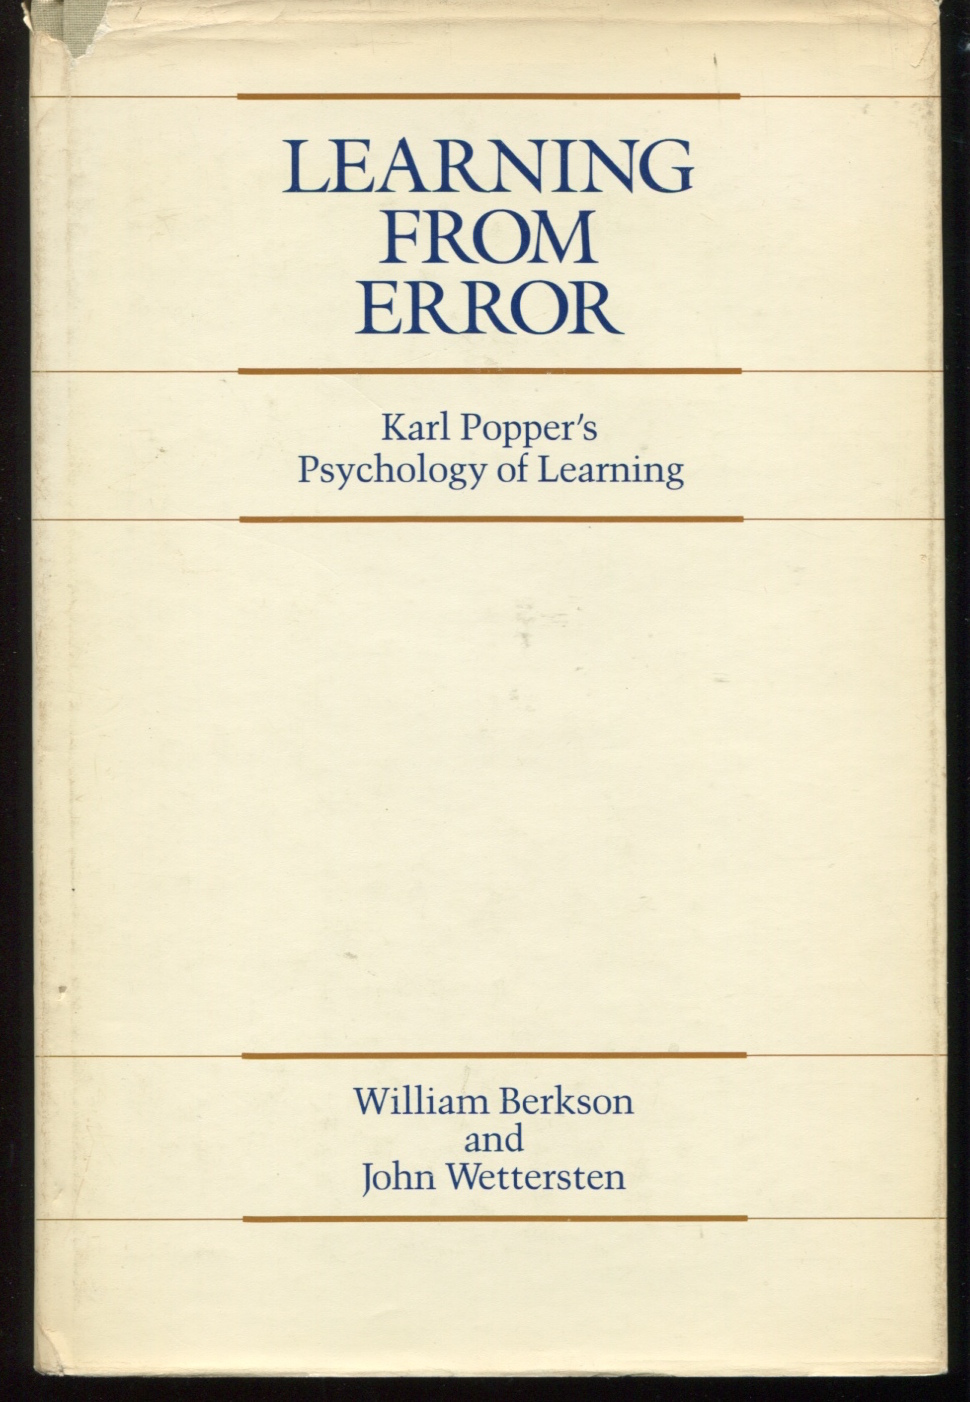 Learning From Error. Karl Popper's Psychology of Learning.